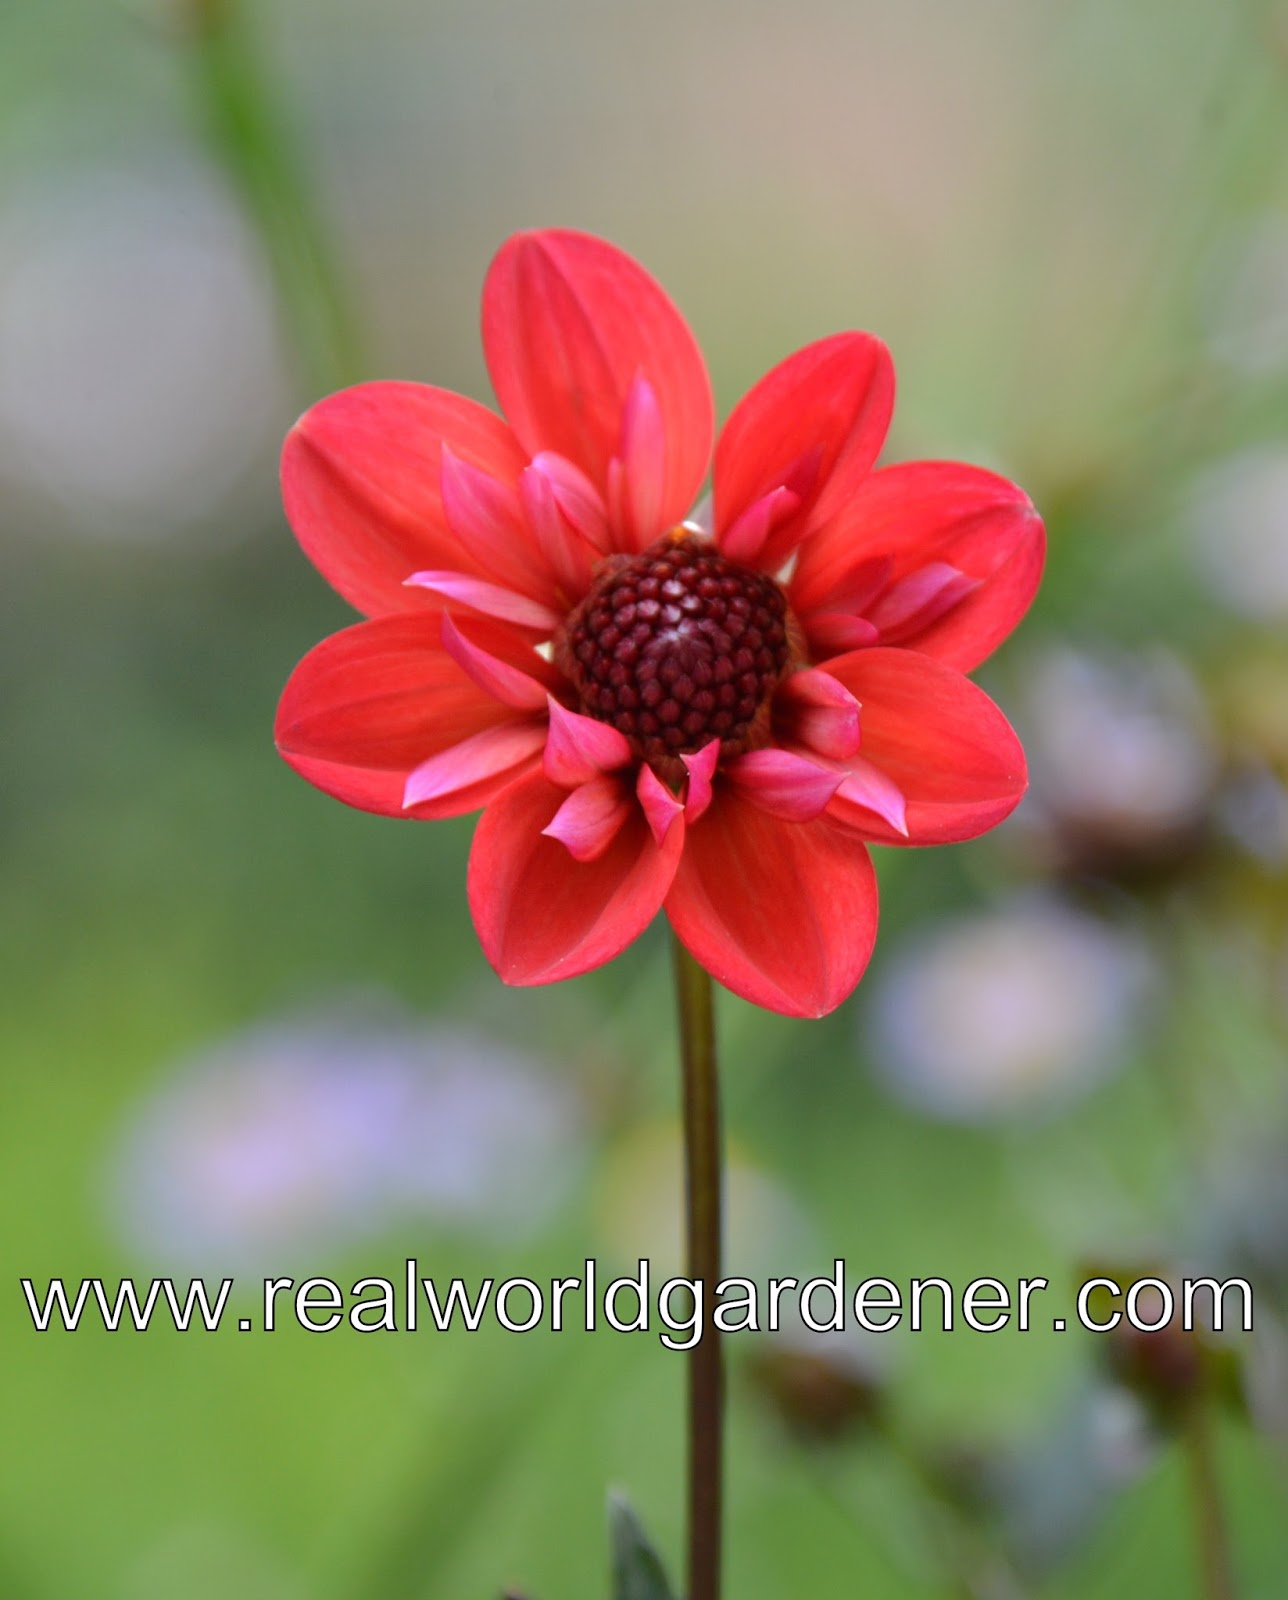 Real world gardener the queen of autumn flowers you can leave your dahlia tubers in the ground in warmer arease black leaf variety dahlia summer days are not as susceptible to powdery mildew and izmirmasajfo